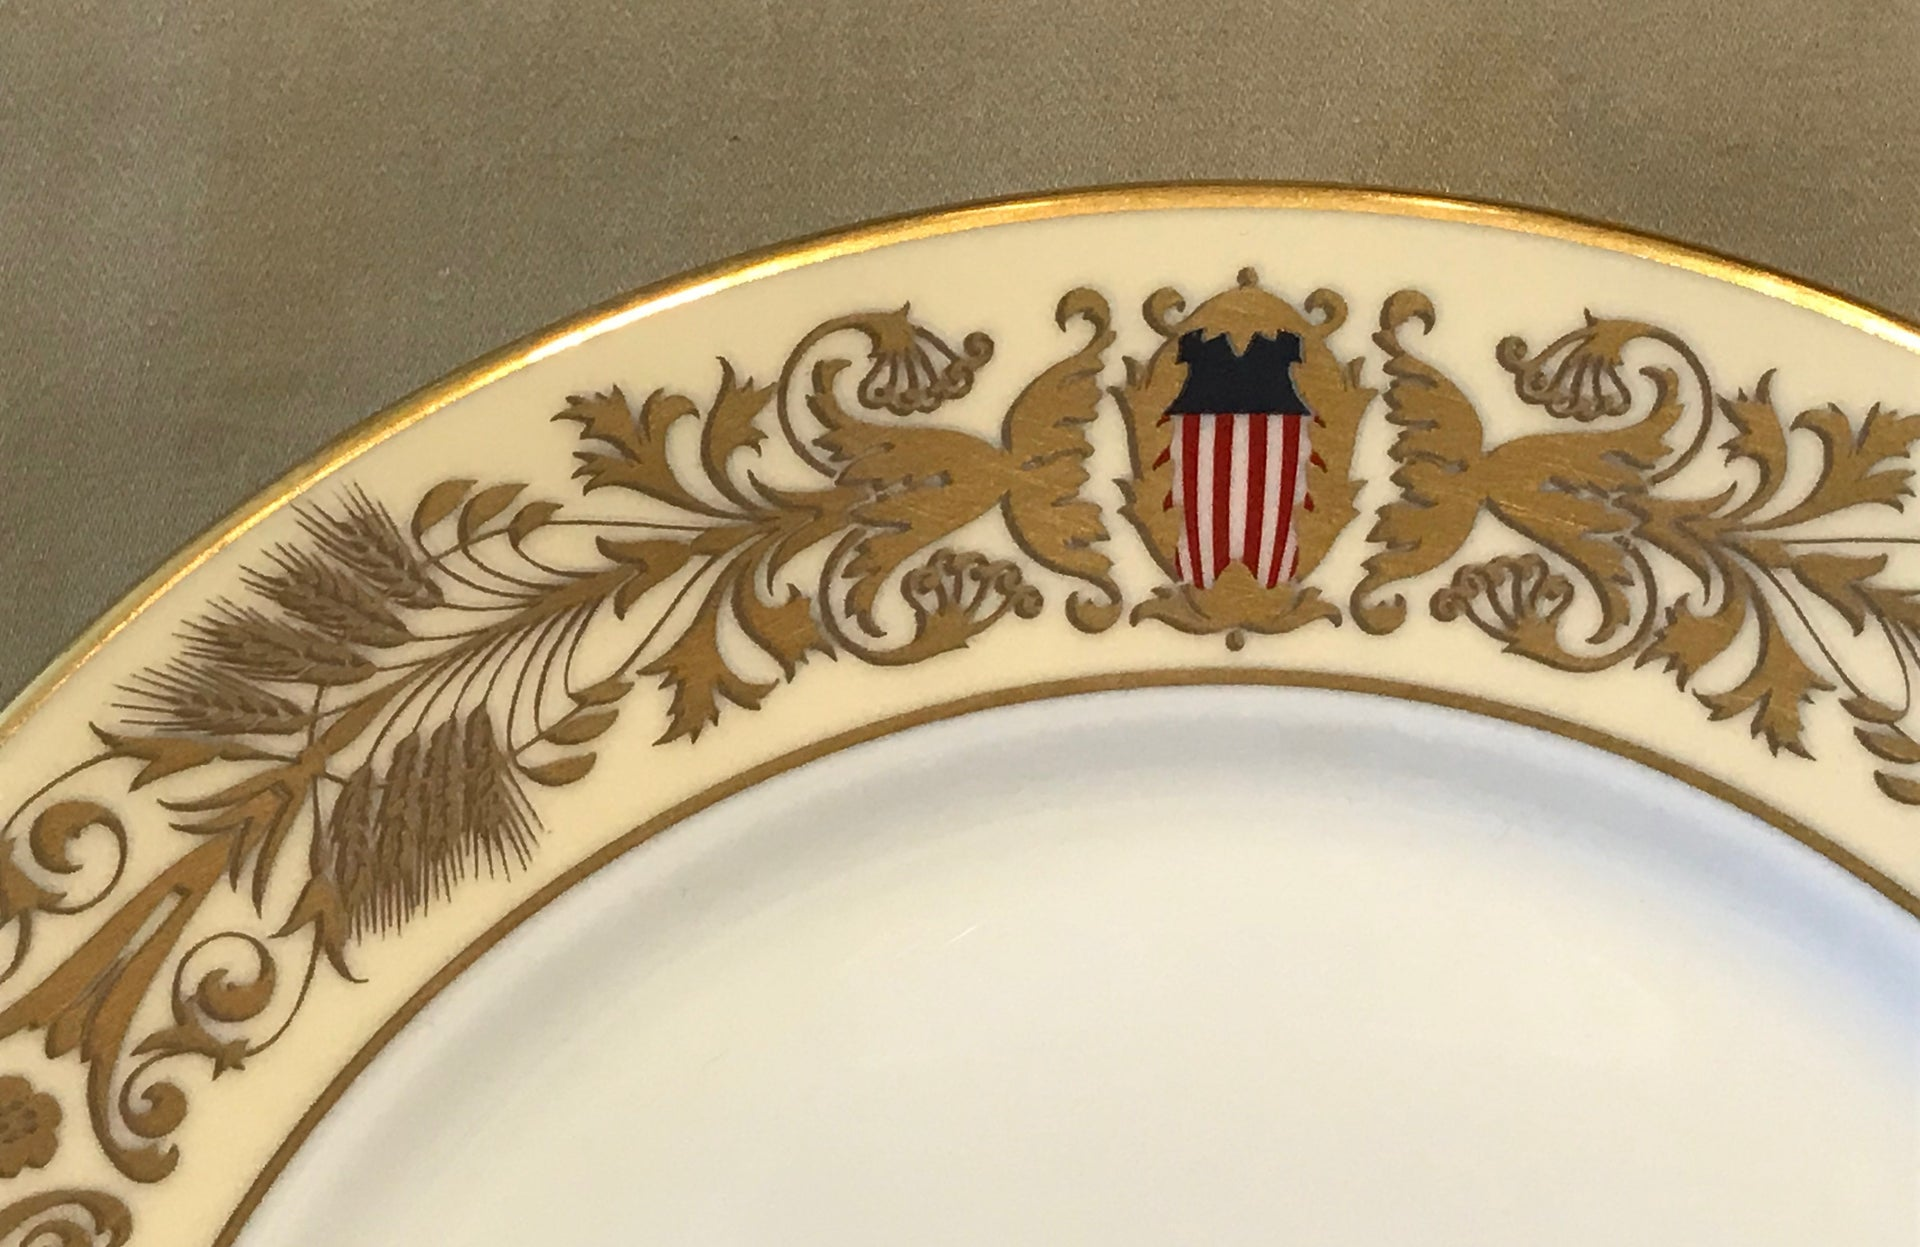 Tiffany & Co. 200th Congressional Anniversary Commemorative Plate (Circa 2000)